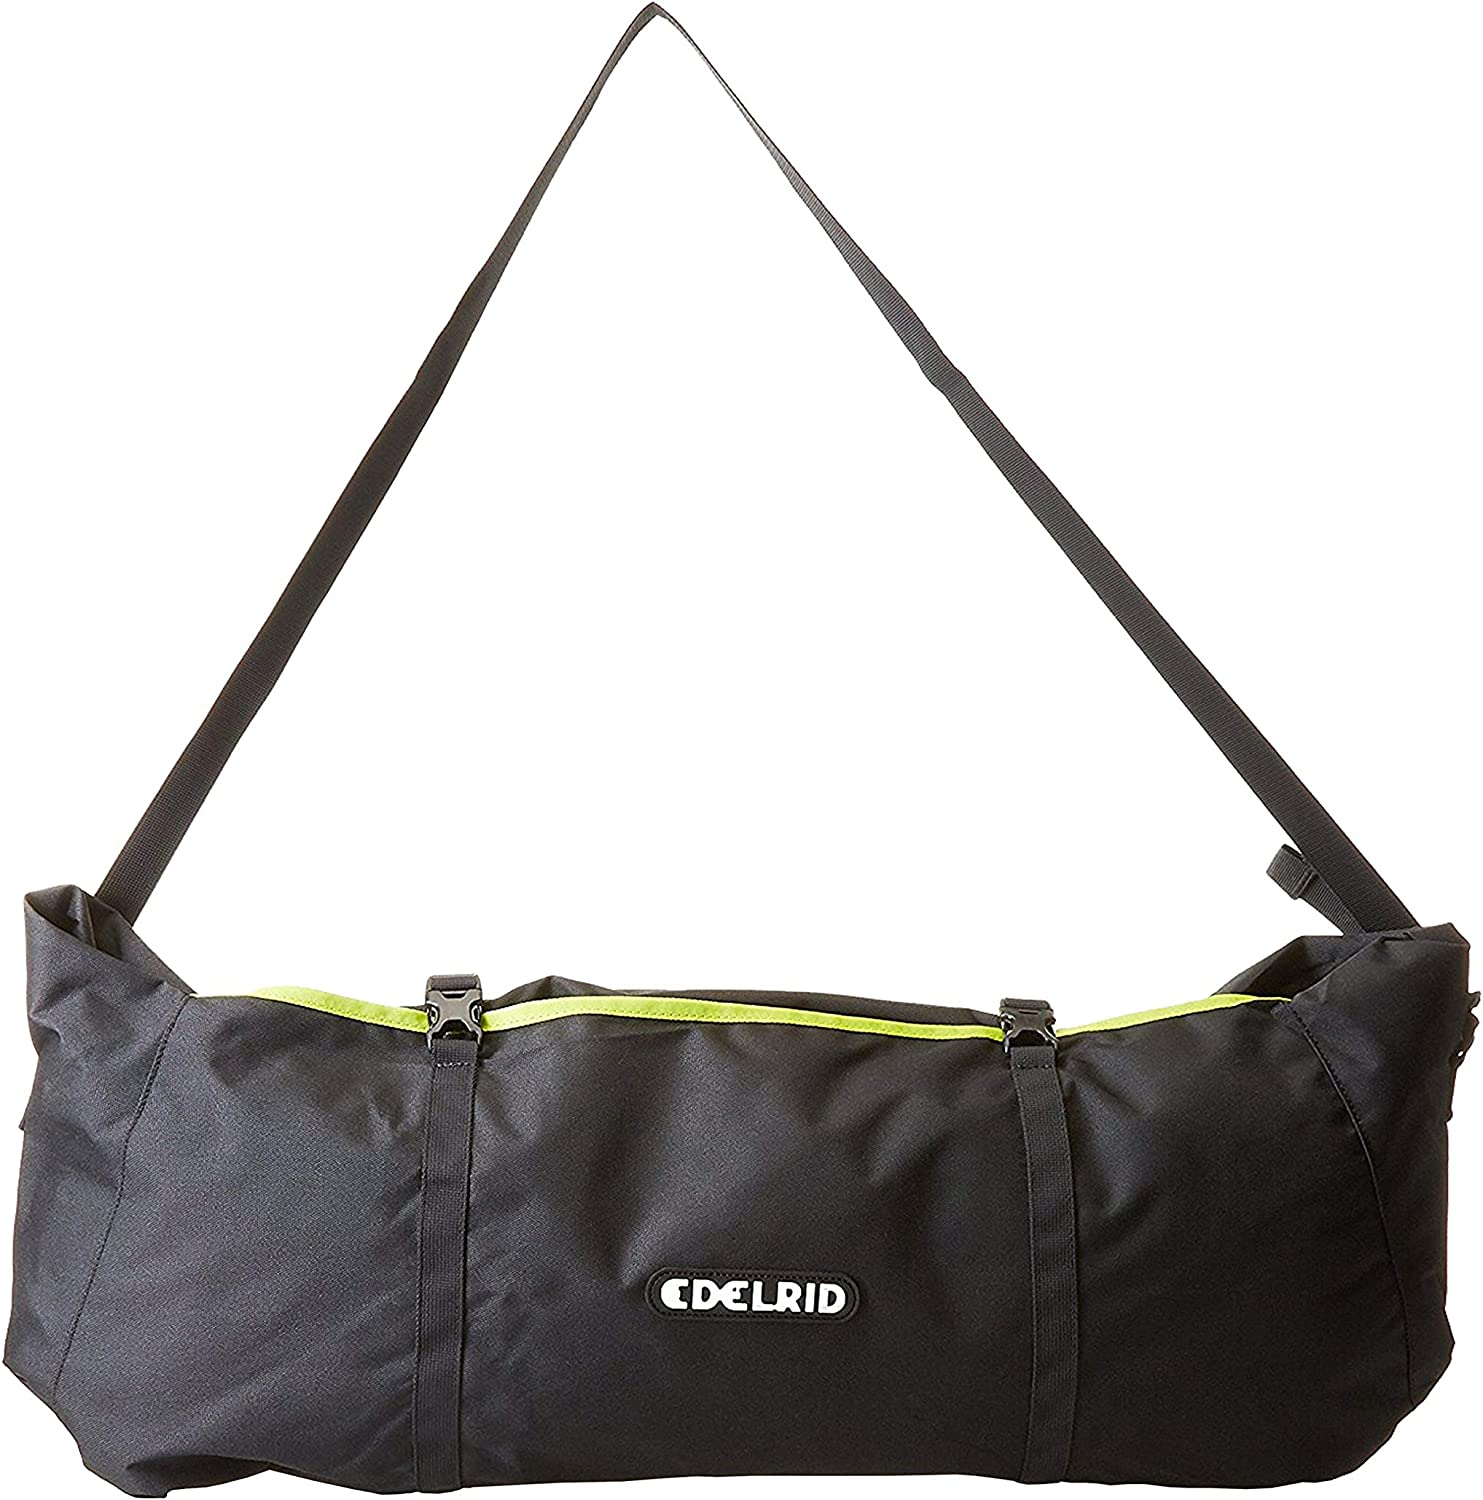 EDELRID Liner Rope Bag - Night/Oasis : Climbing Rope Bags : Sports & Outdoors